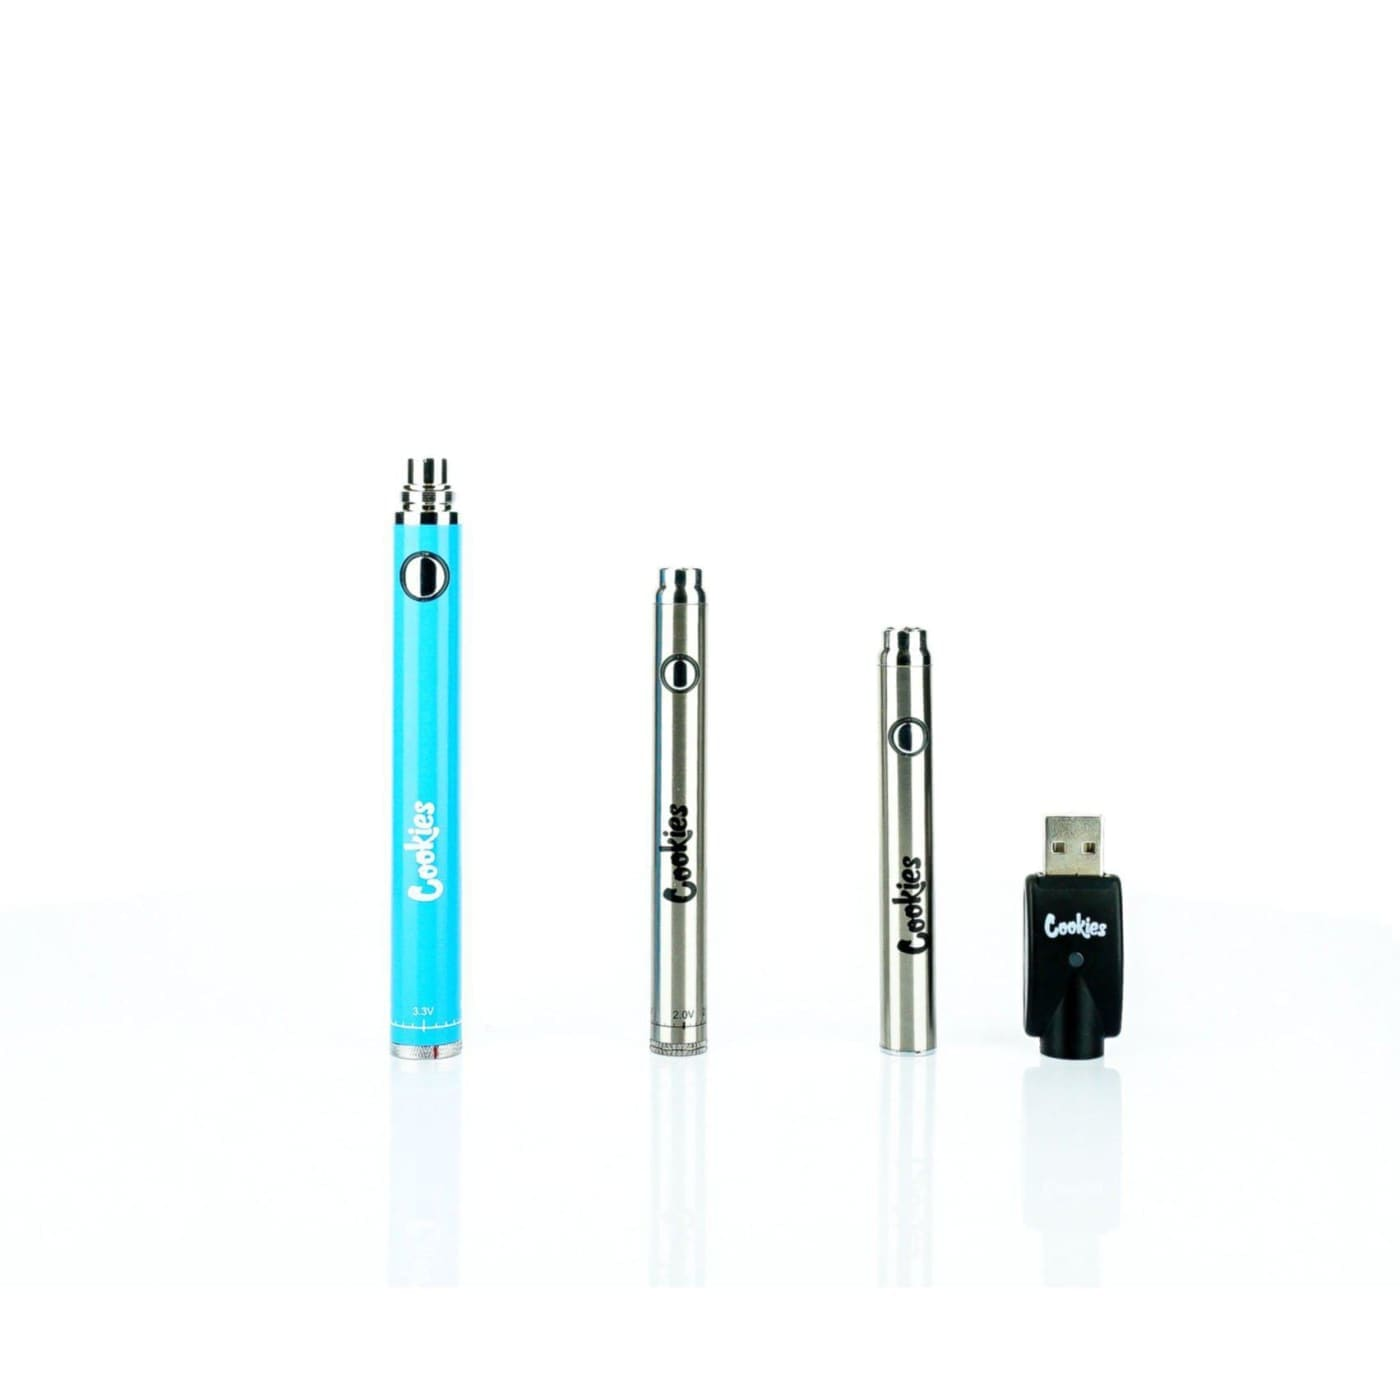 Cookies 510 Vape Pen Battery Slim On sale